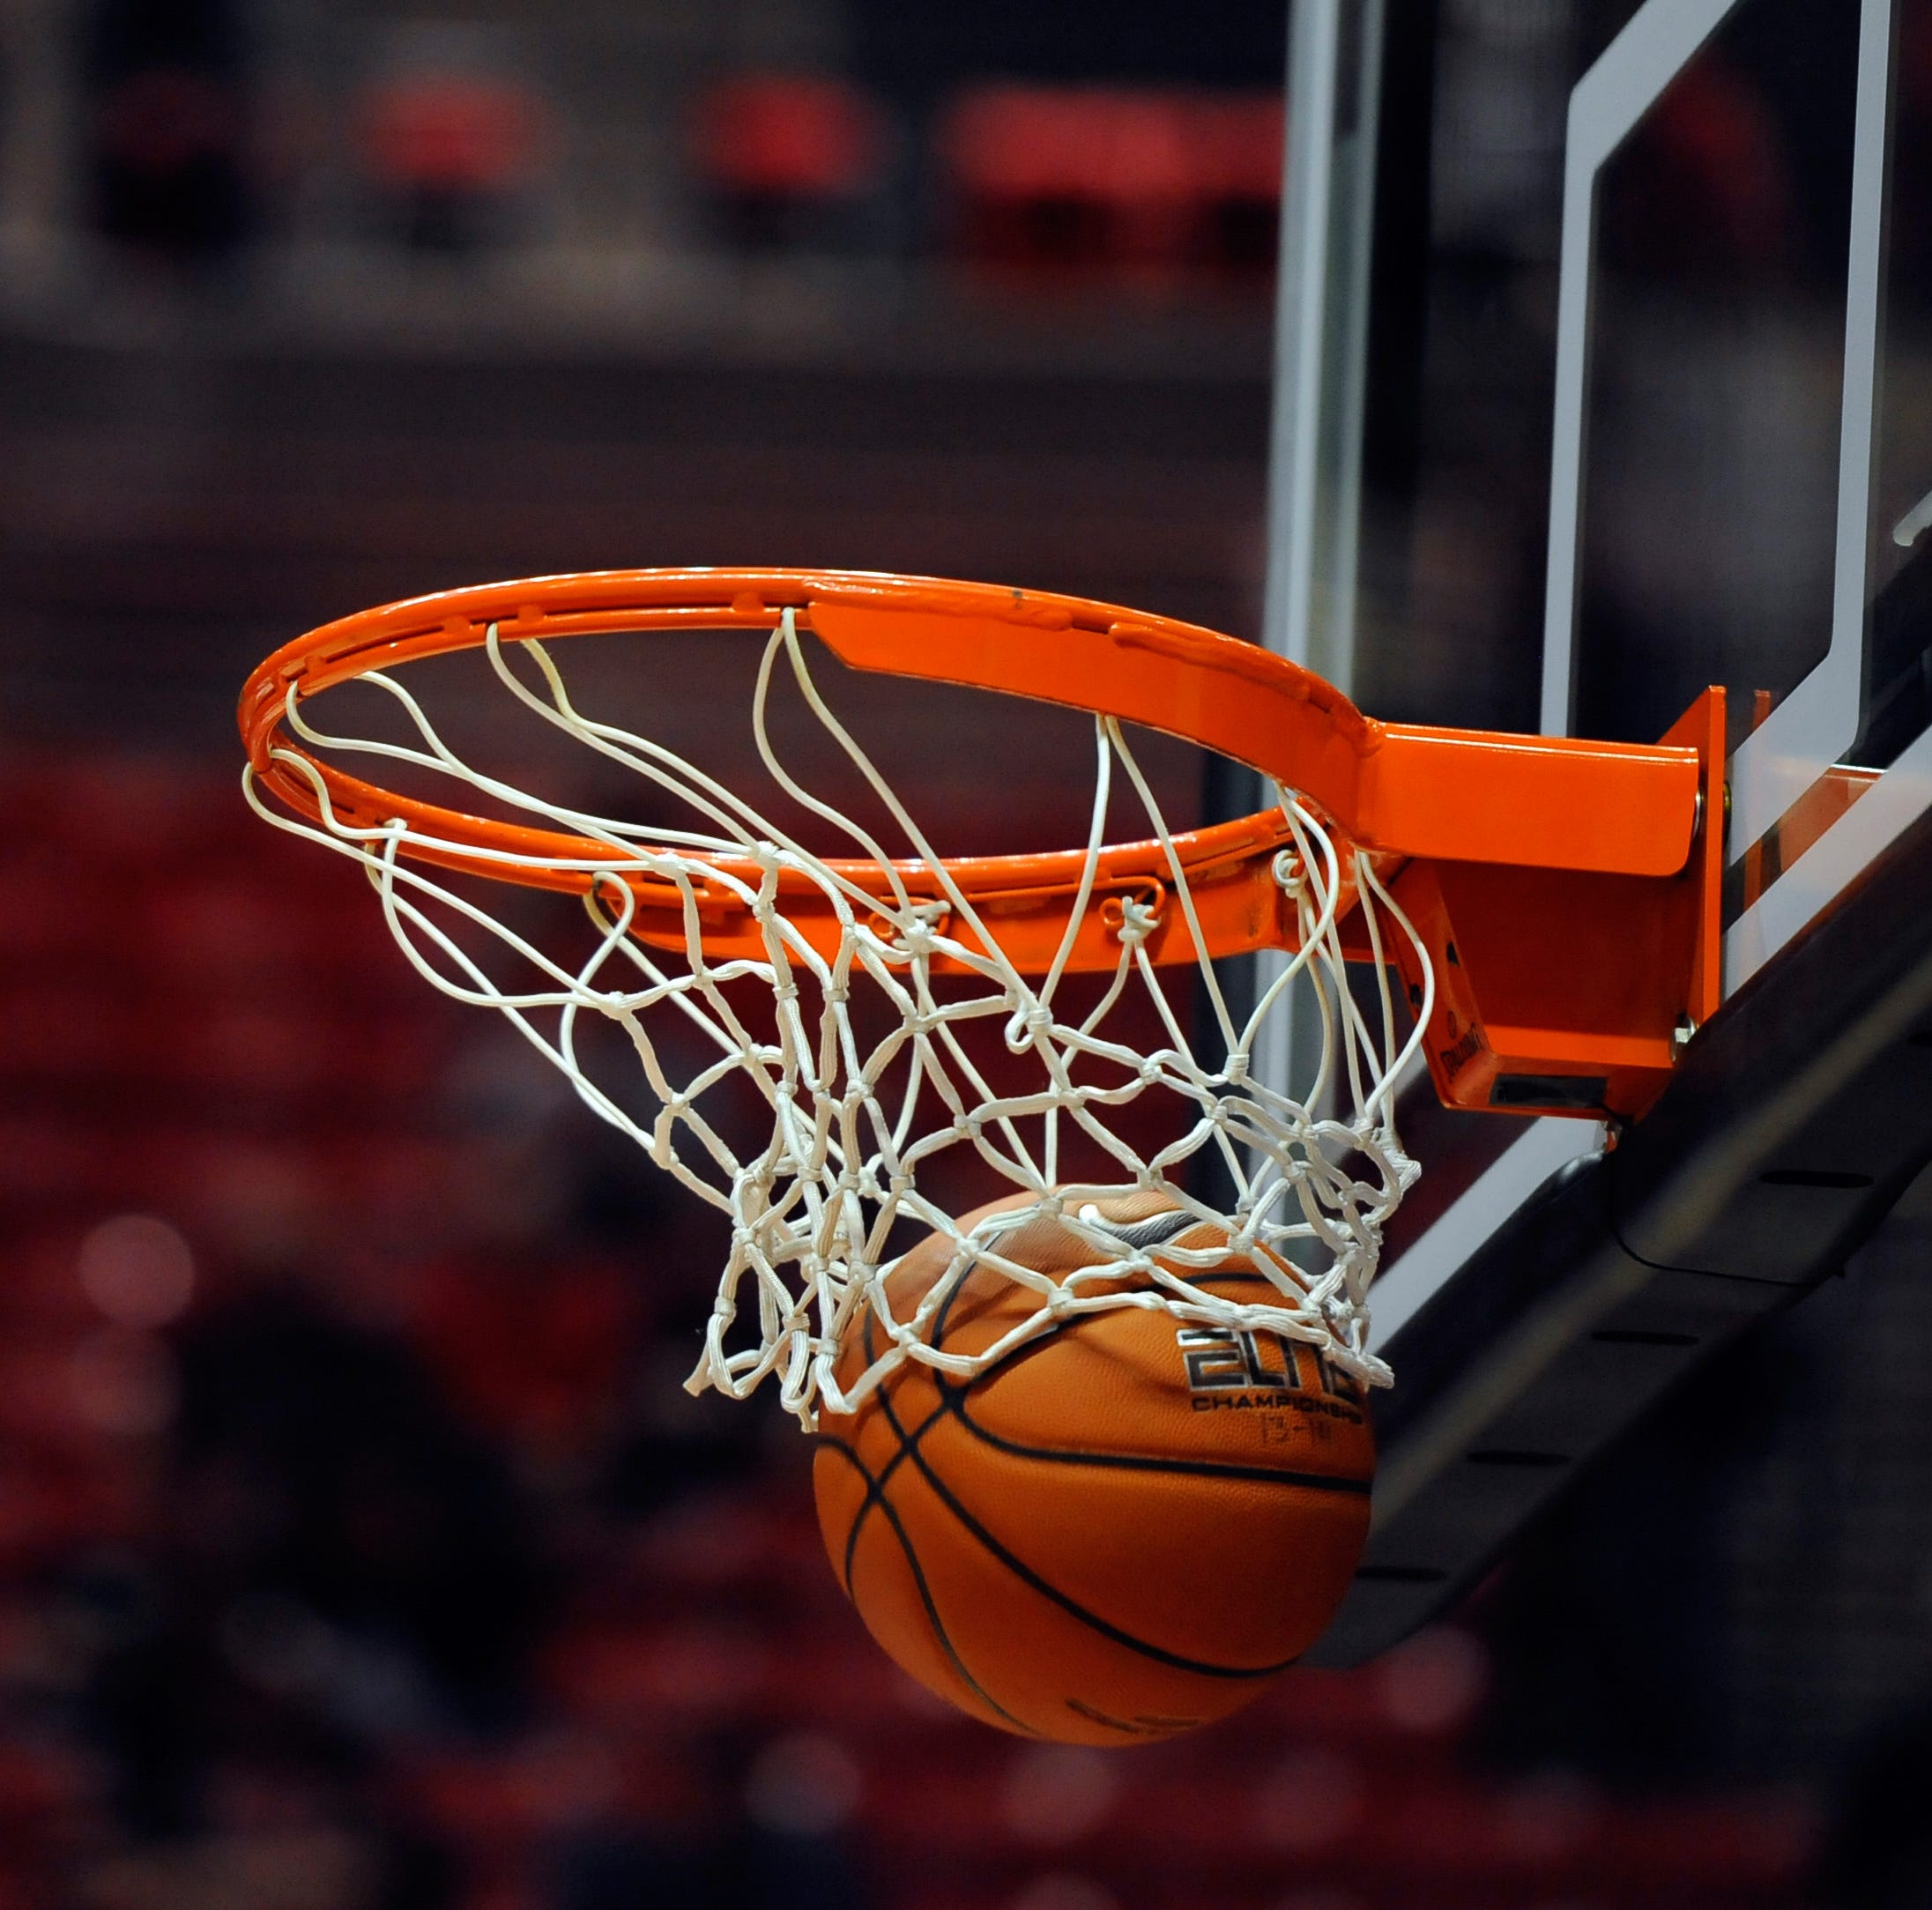 Thursday's SC High School Basketball Playoff Scoreboard